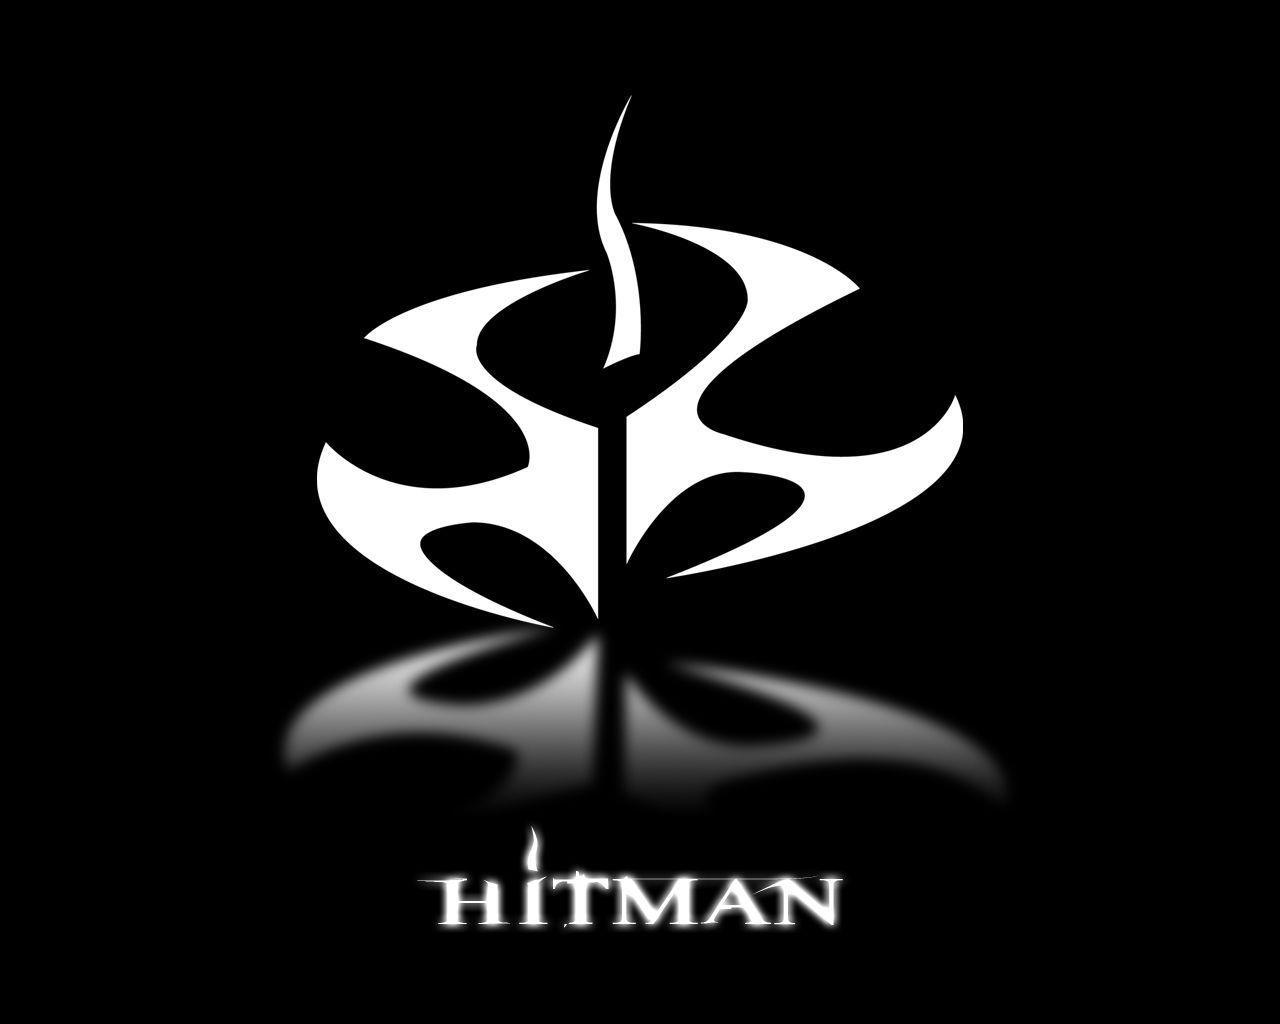 hitman logo wallpapers wallpaper cave